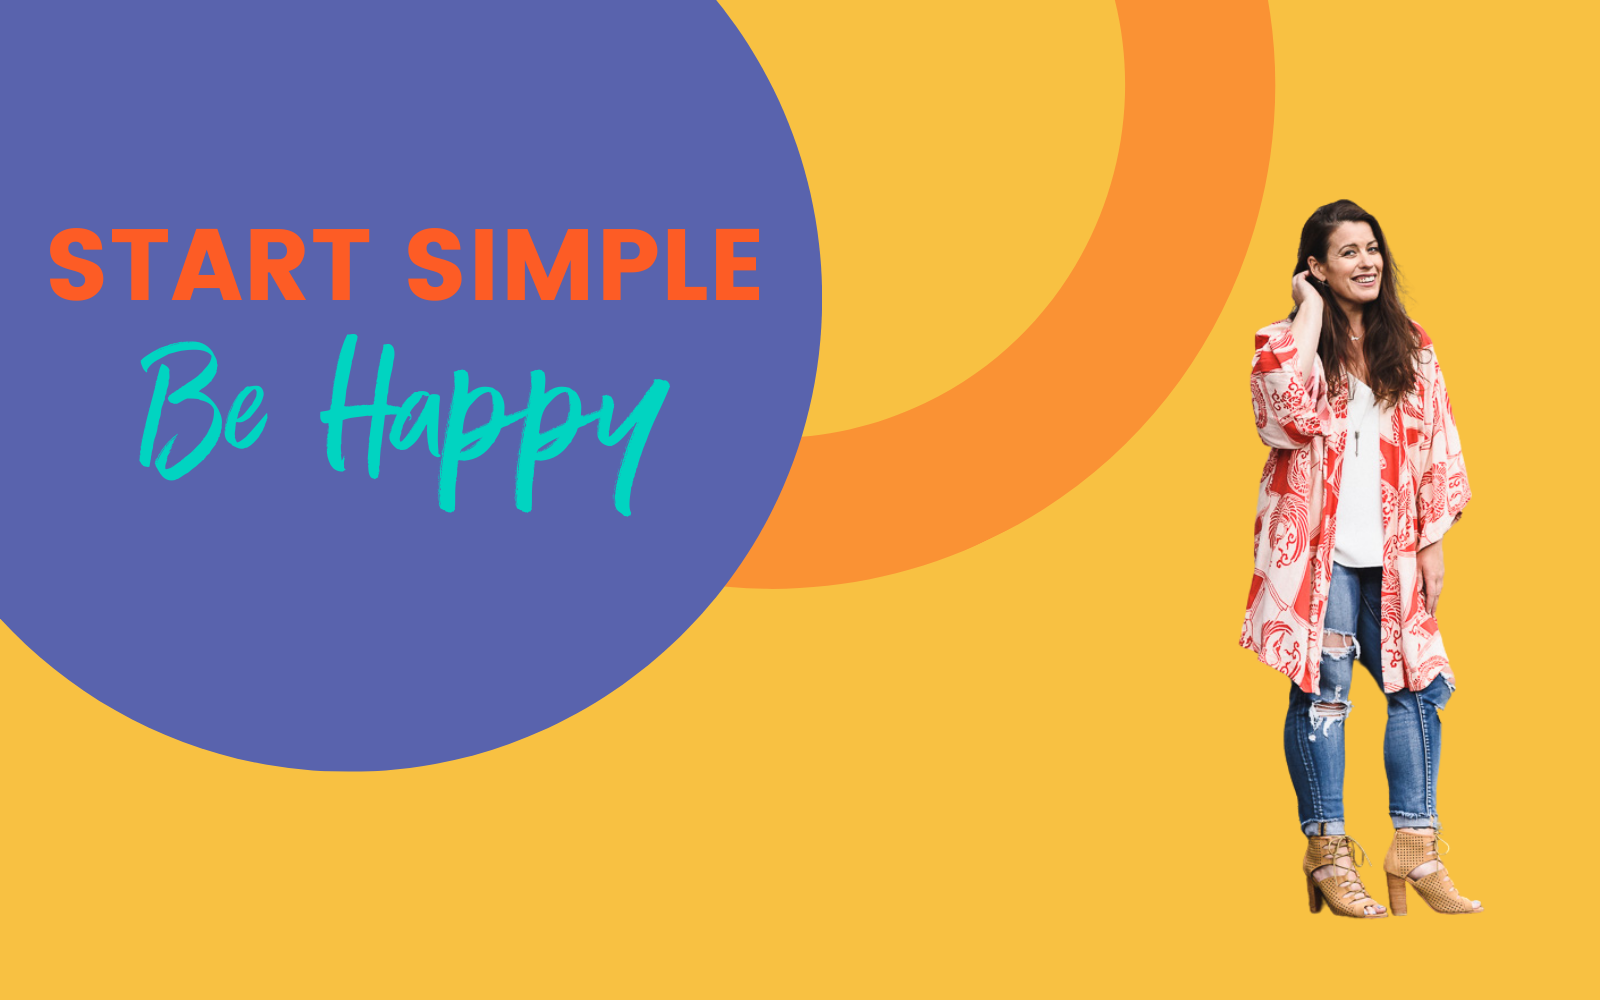 Start Simple. Be Happy